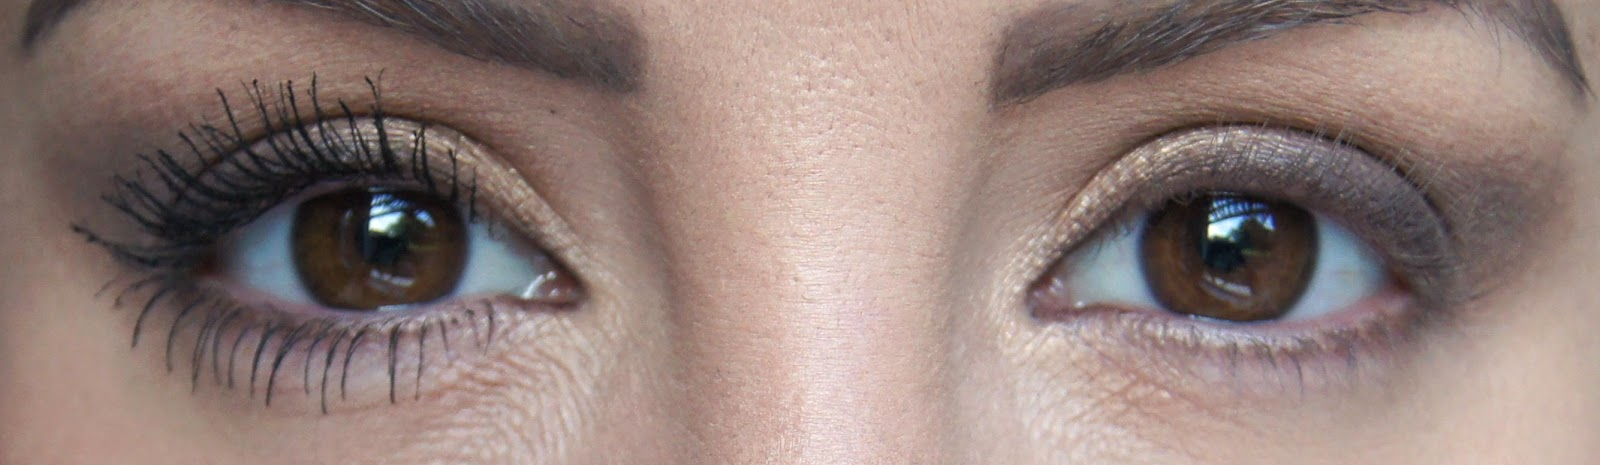 bourjois volume 1 seconde mascara review with and without before and after